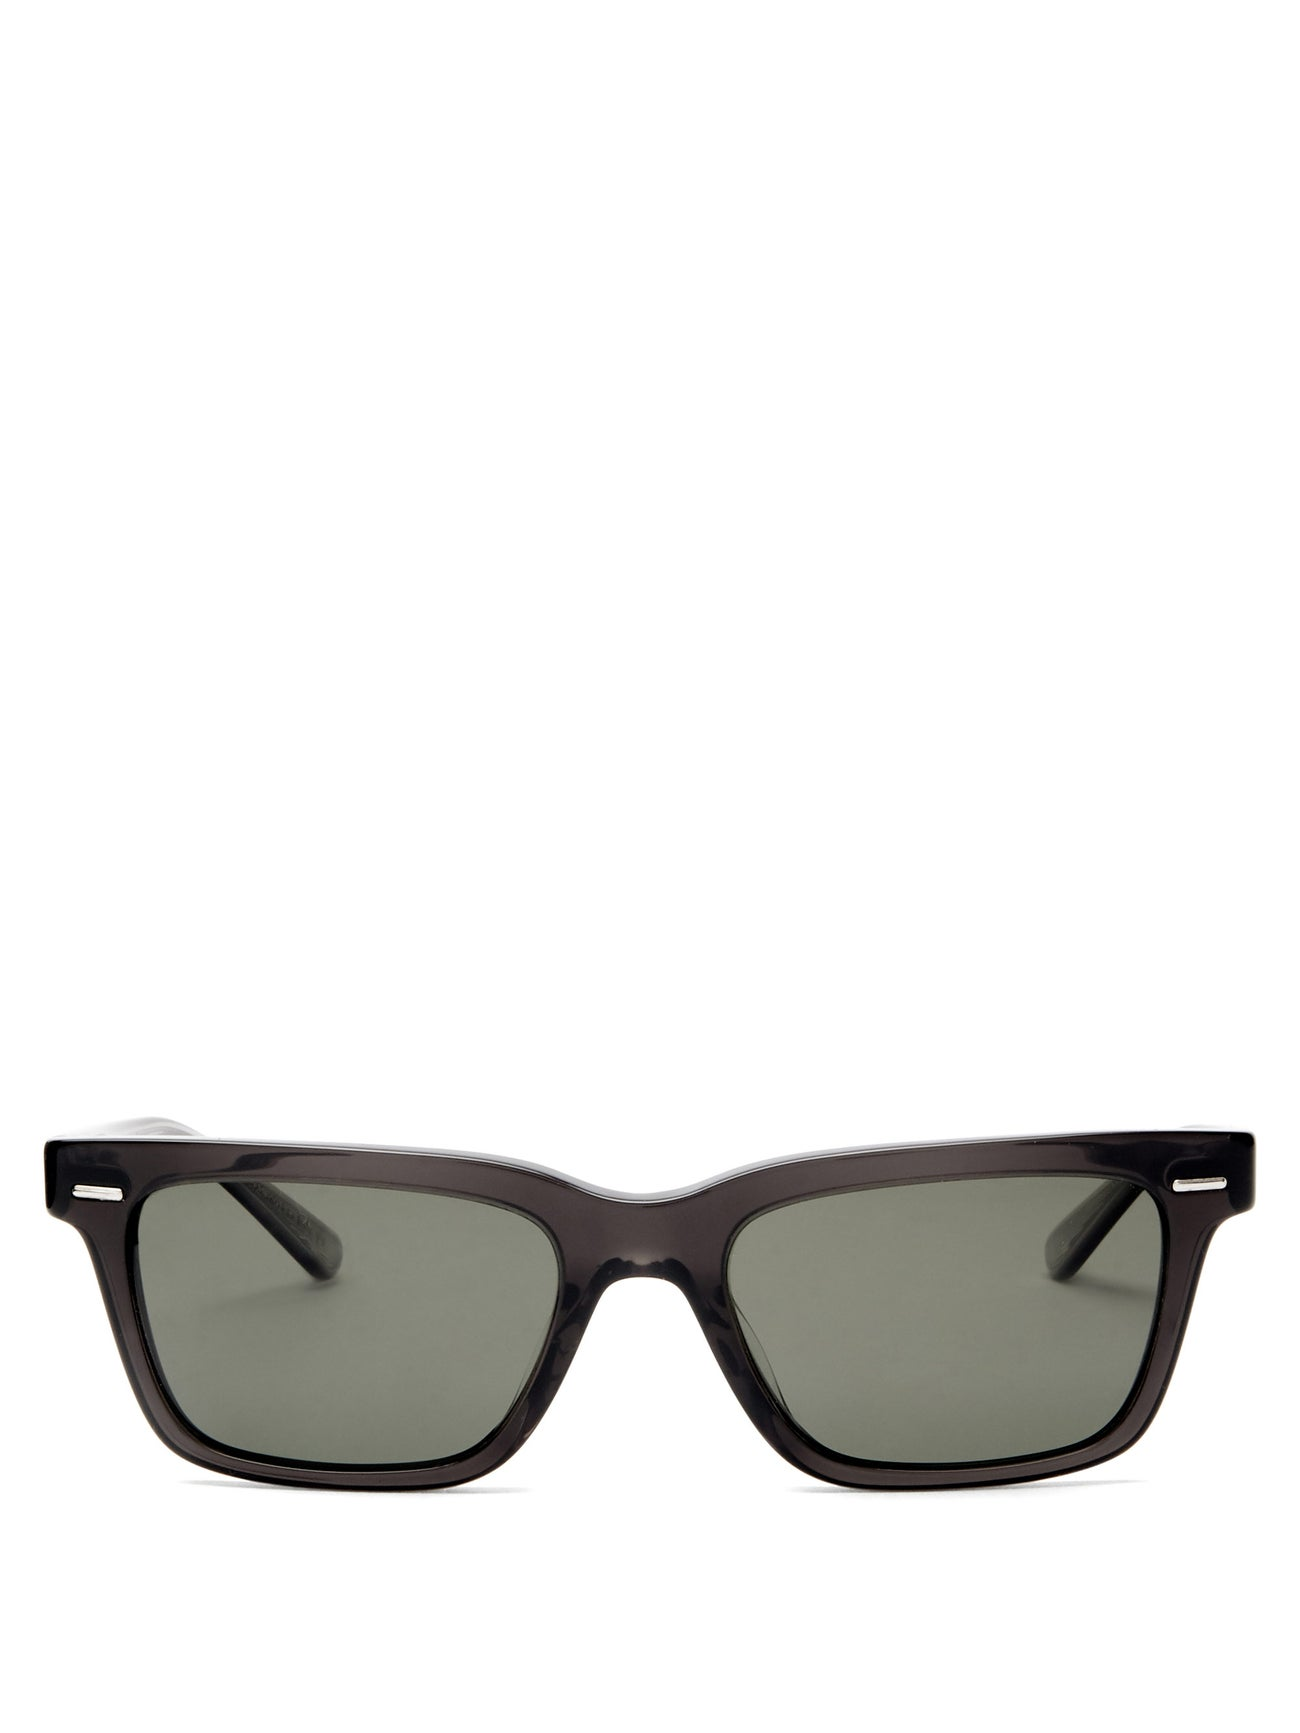 X Oliver Peoples BA CC acetate sunglasses by The Row, available on matchesfashion.com for EUR255 Kaia Gerber Sunglasses Exact Product